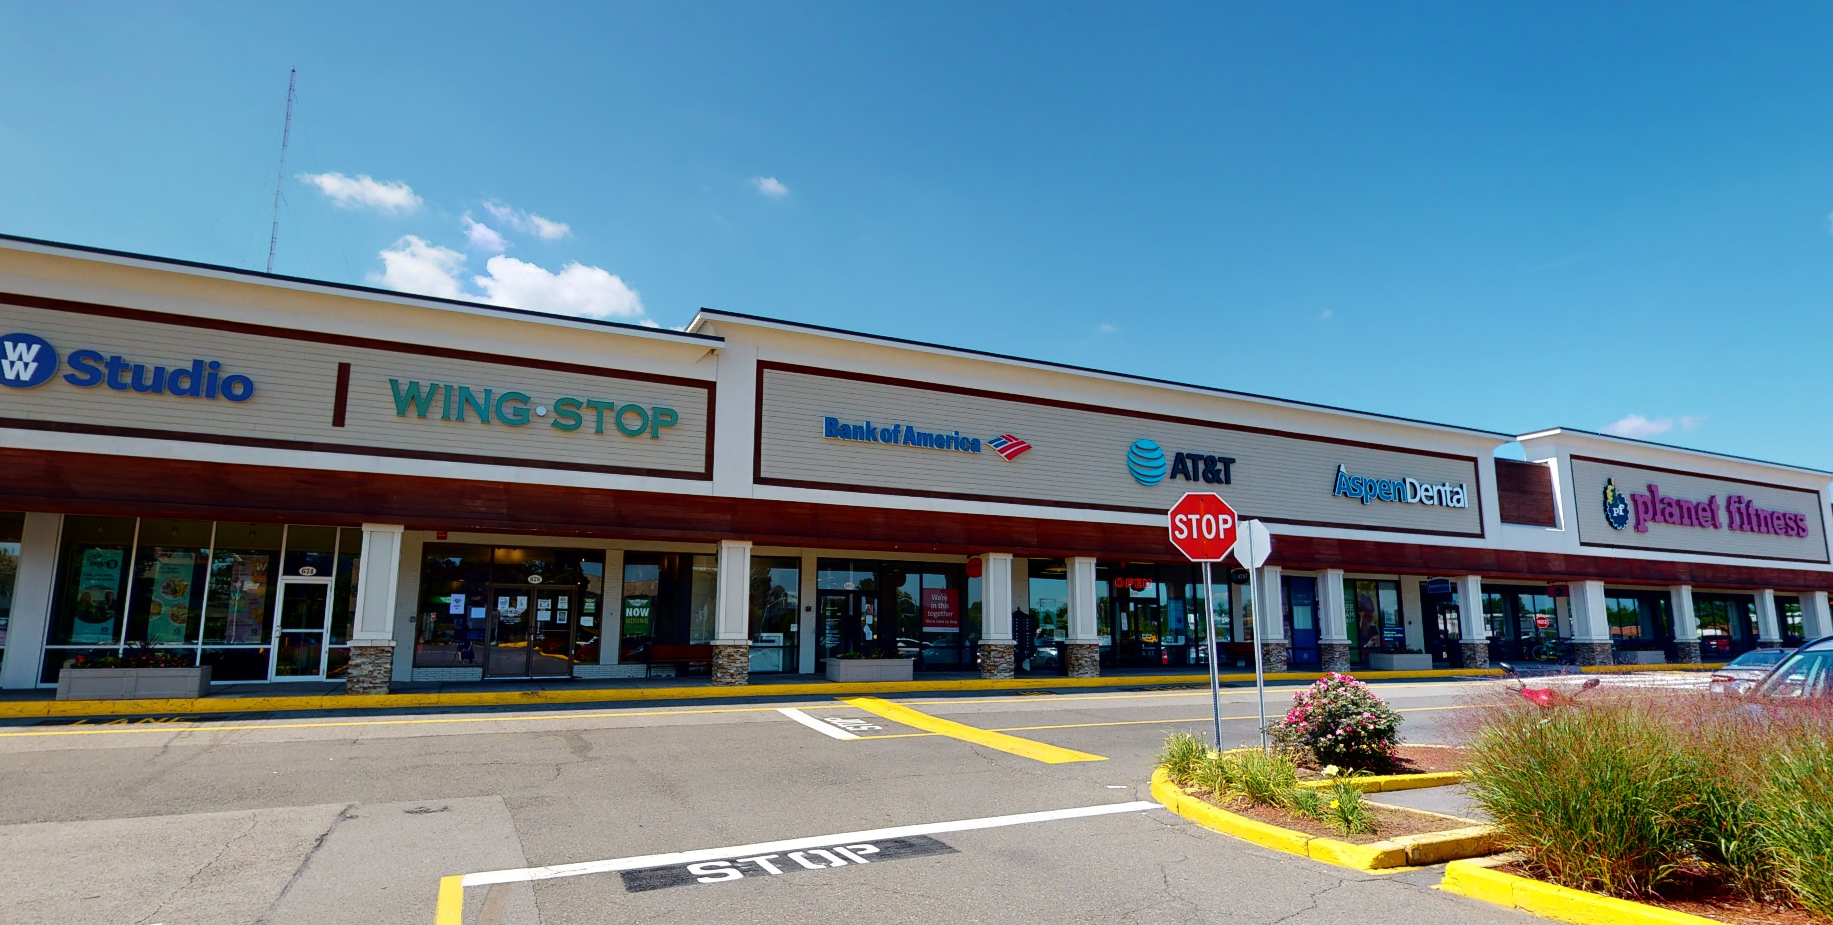 Bank of America financial center with walk-up ATM | 684 Fellsway, Medford, MA 02155